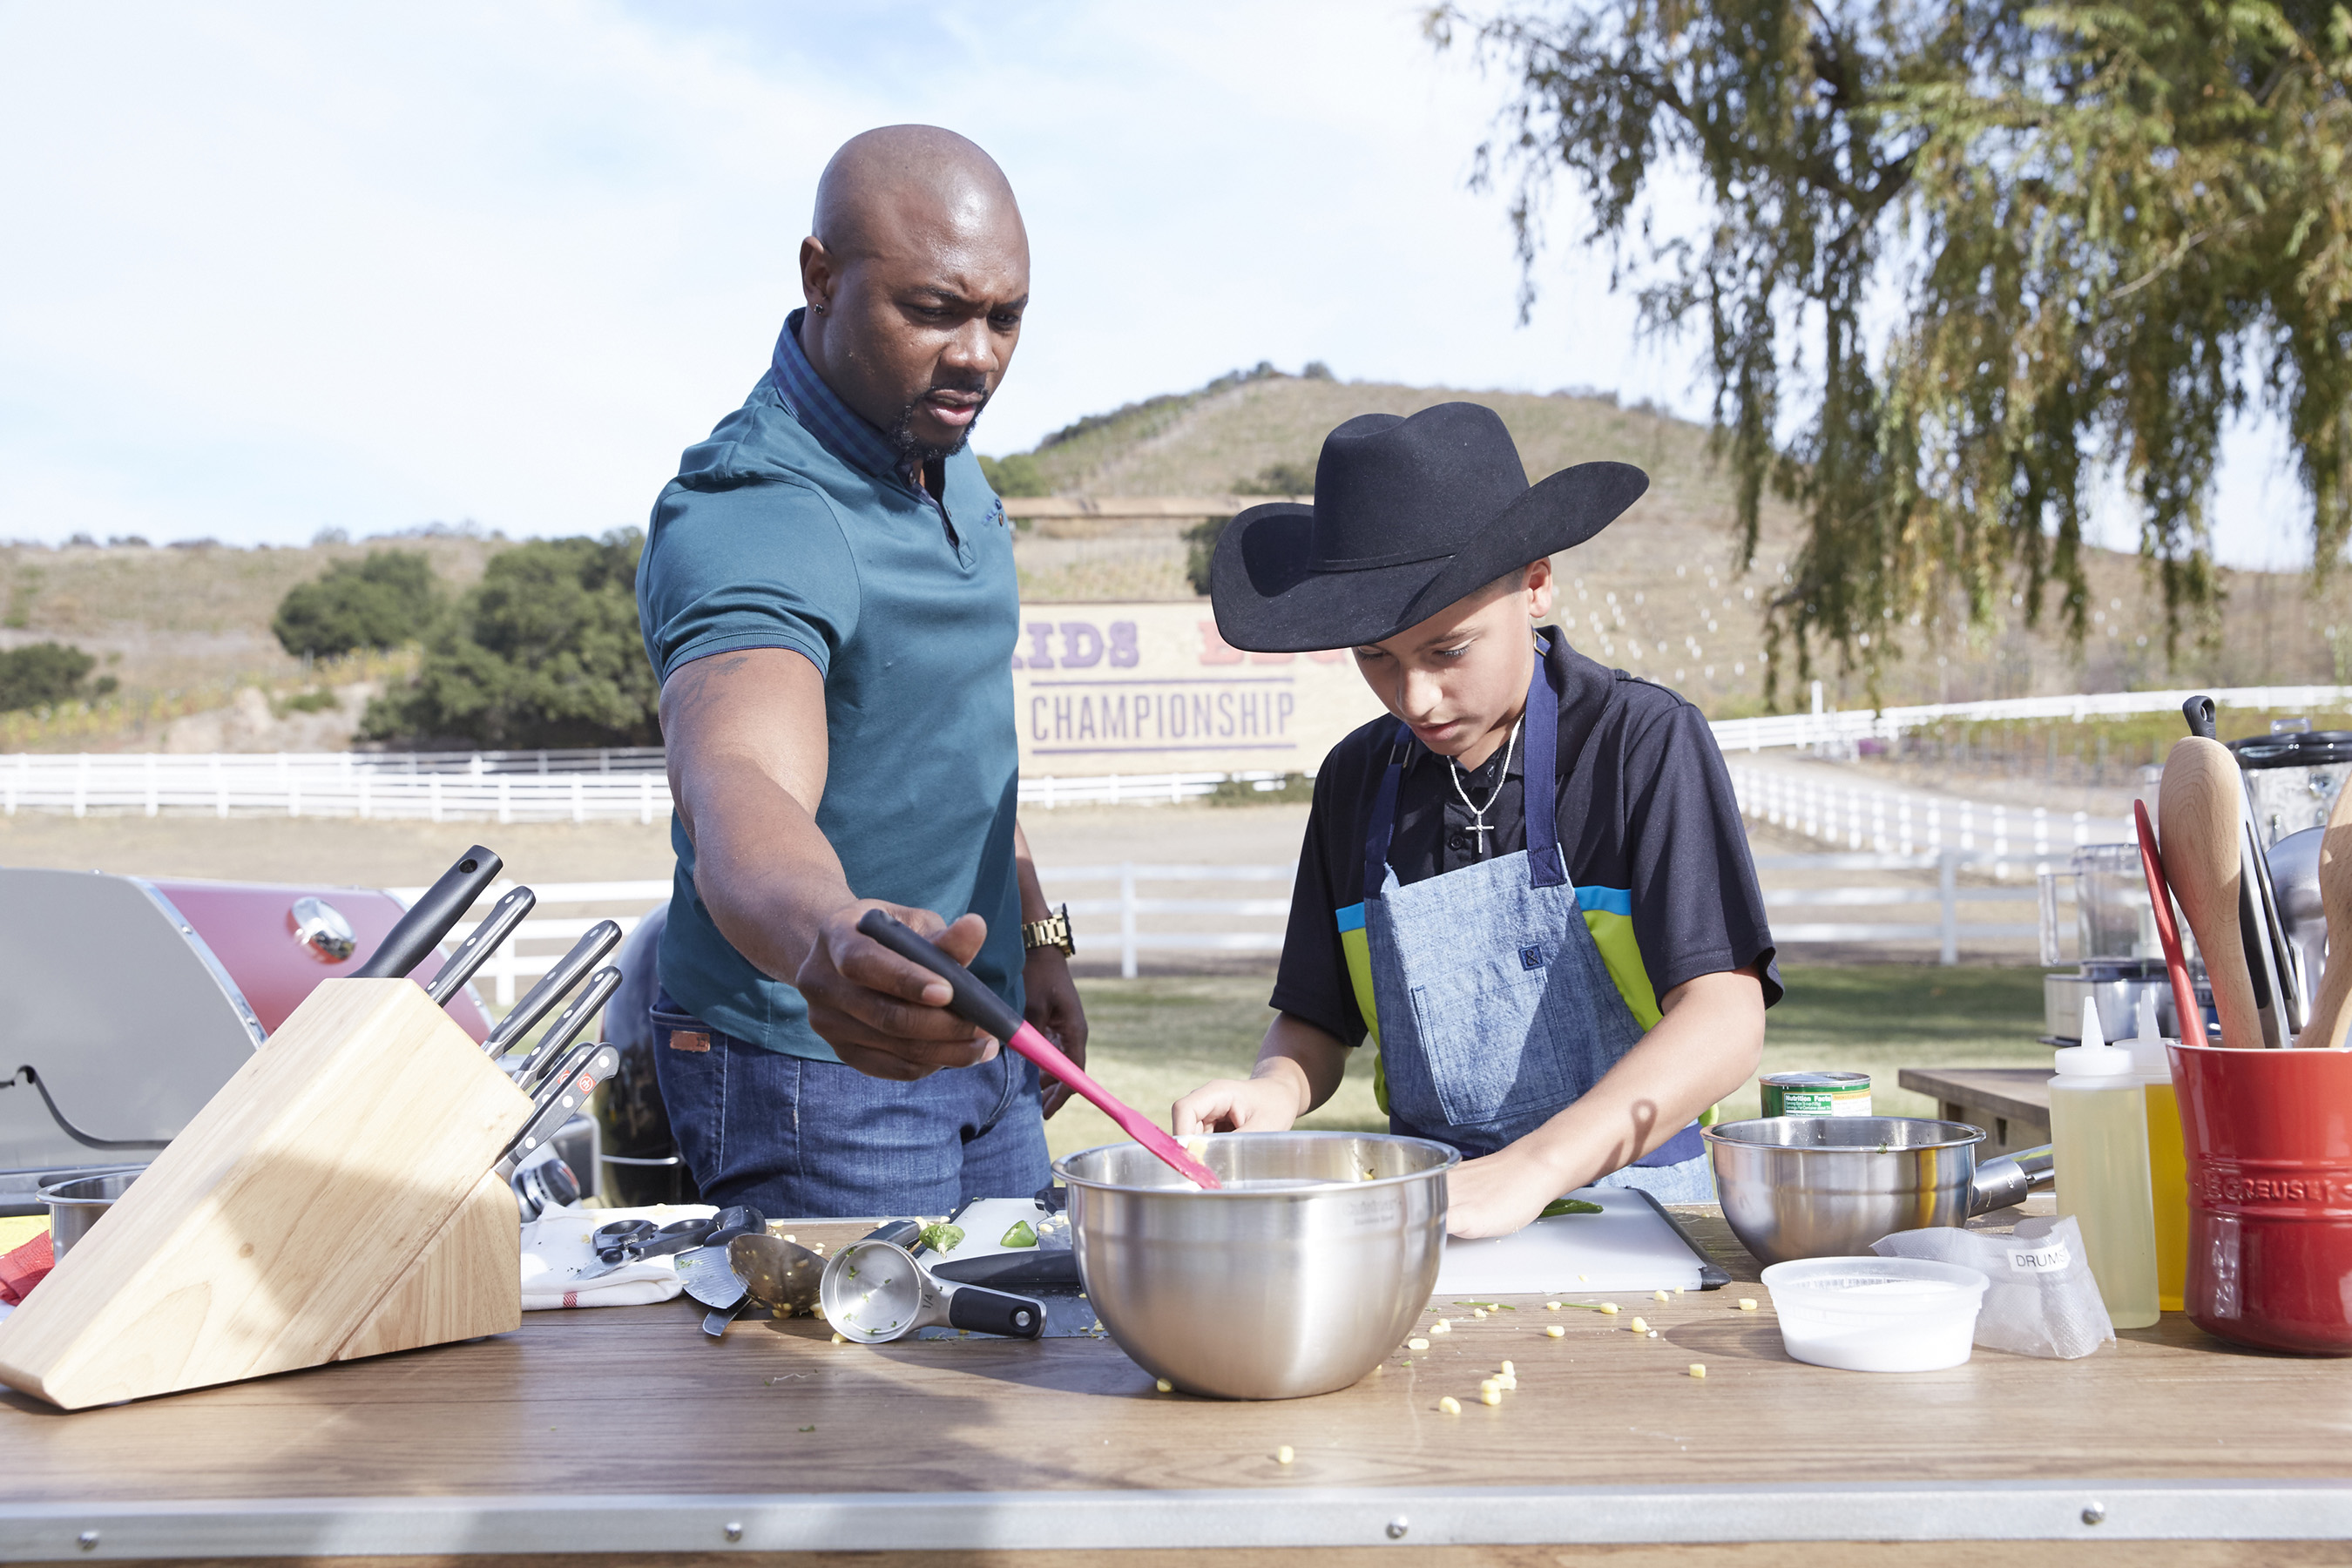 Kids Bbq Championship New Series Coming To Food Network